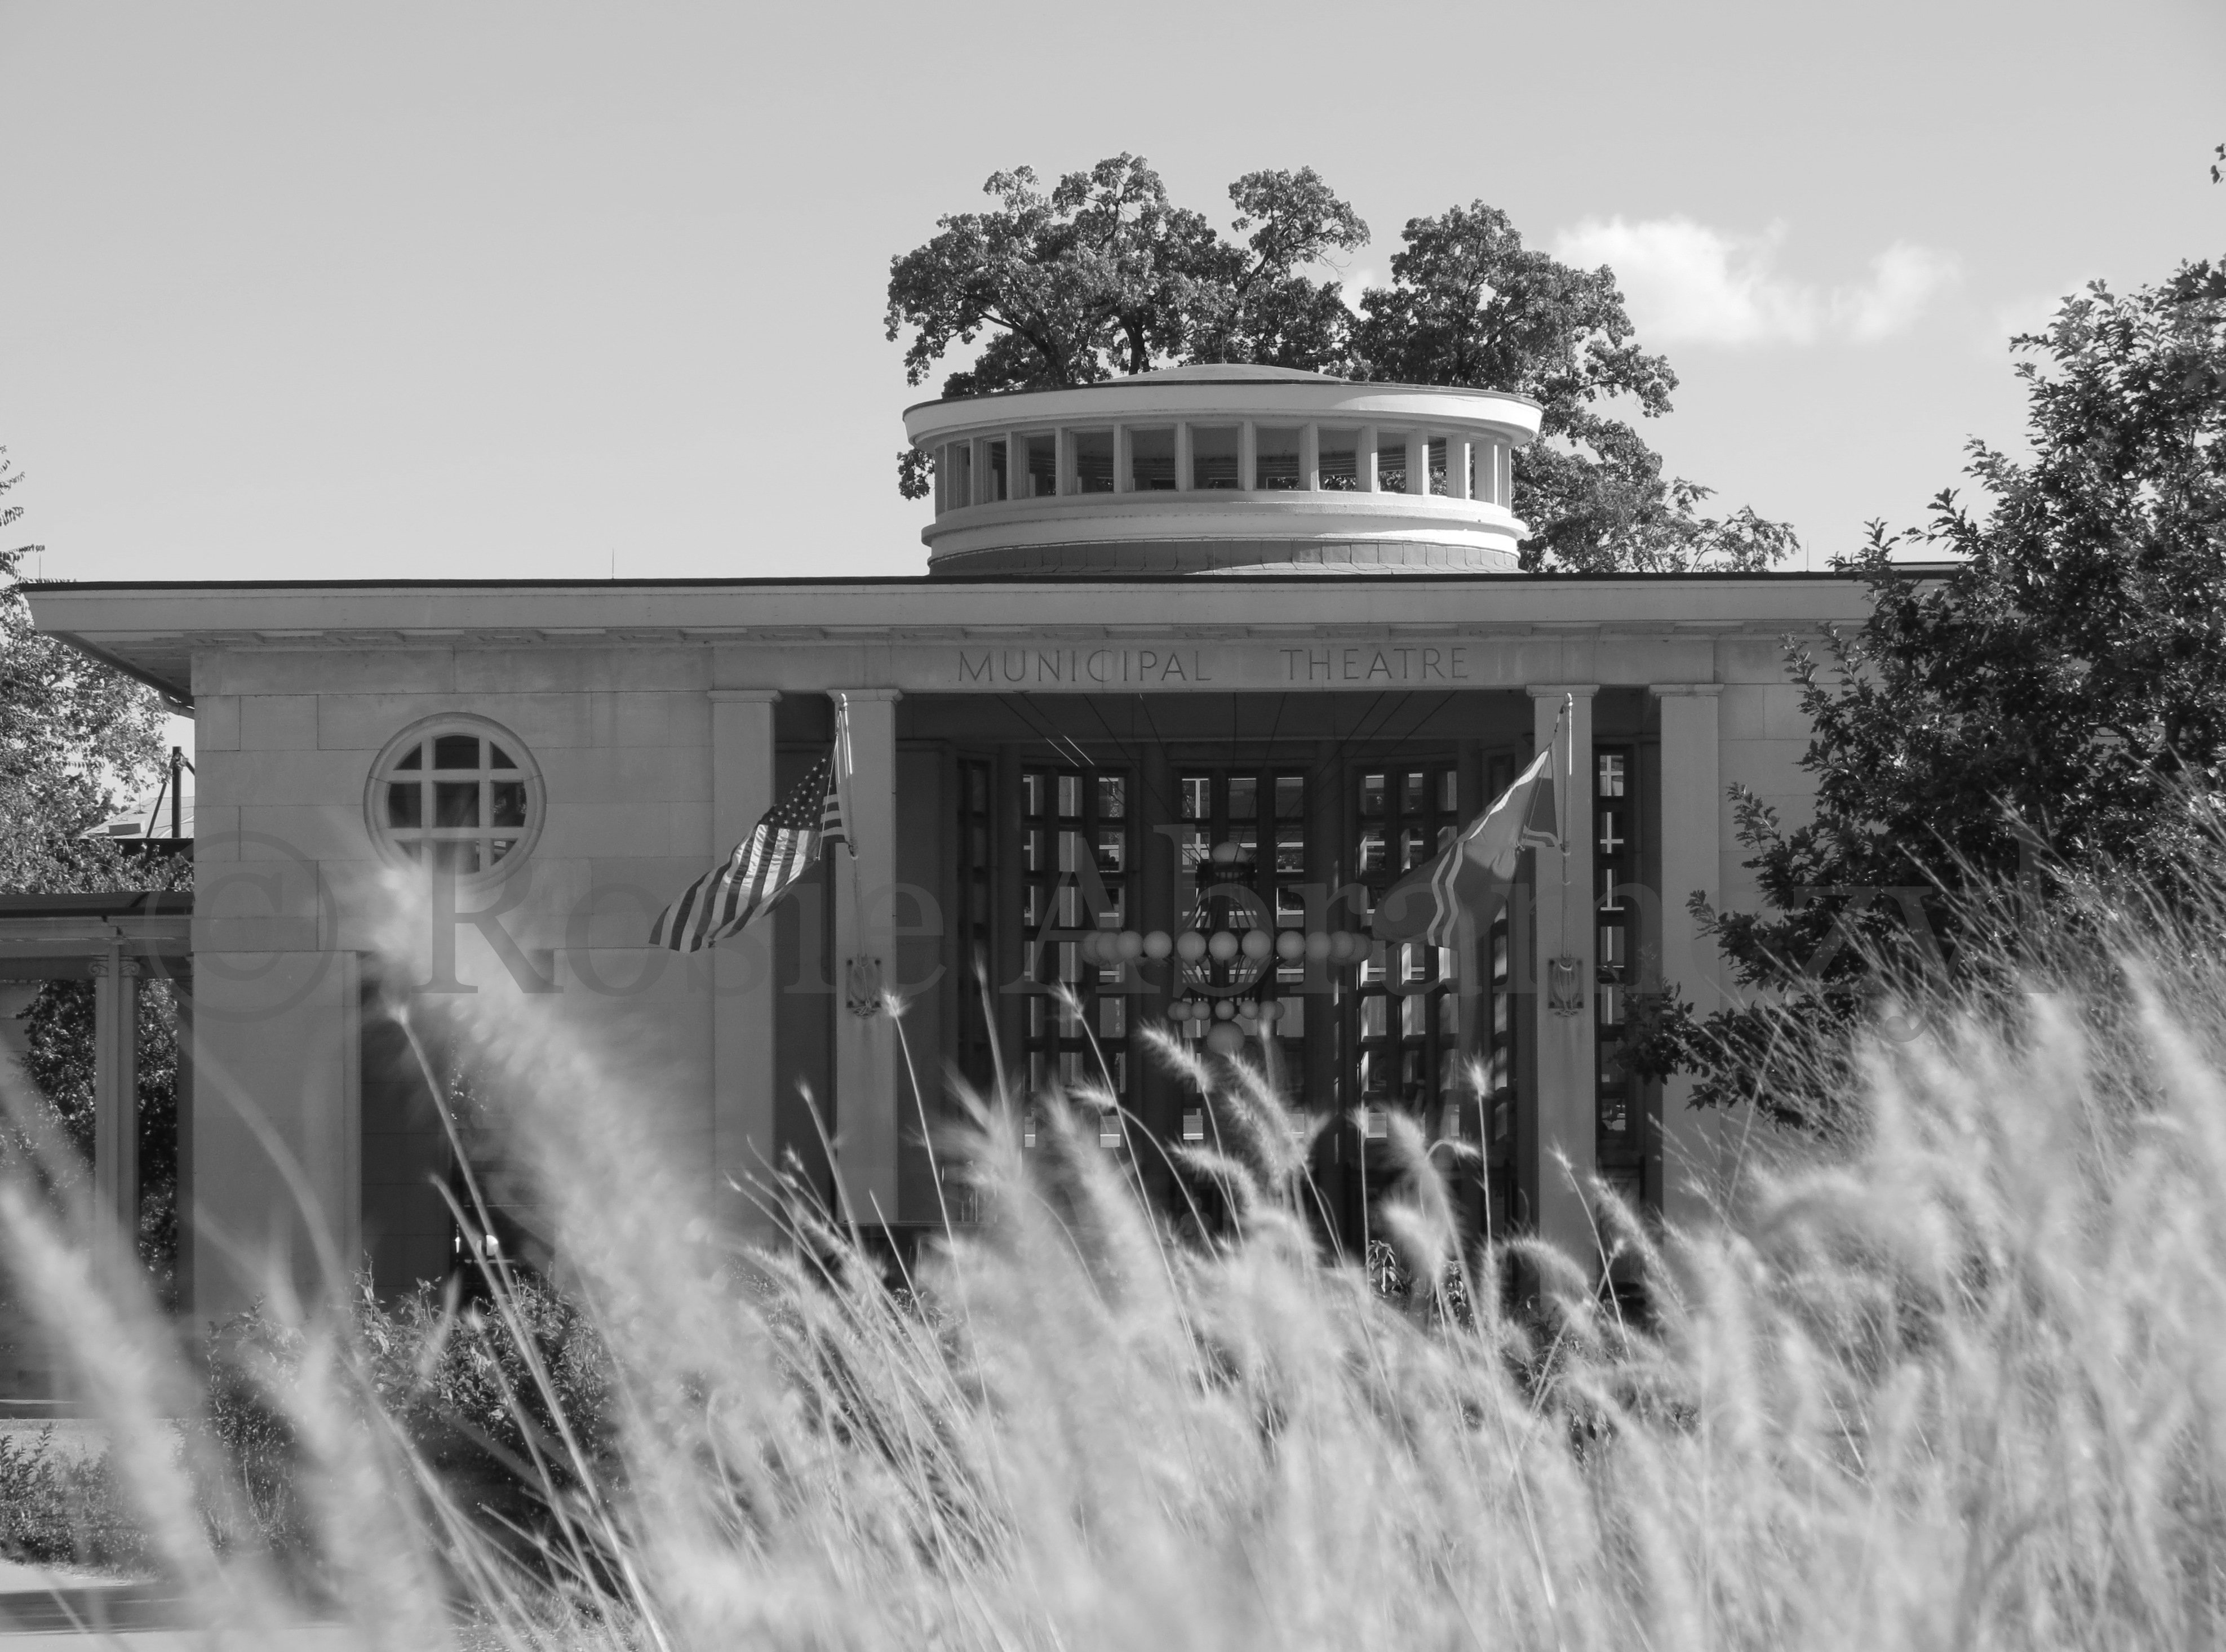 The Muny, St. Louis, MO, by Rosie Abramczyk, Photo, 2013